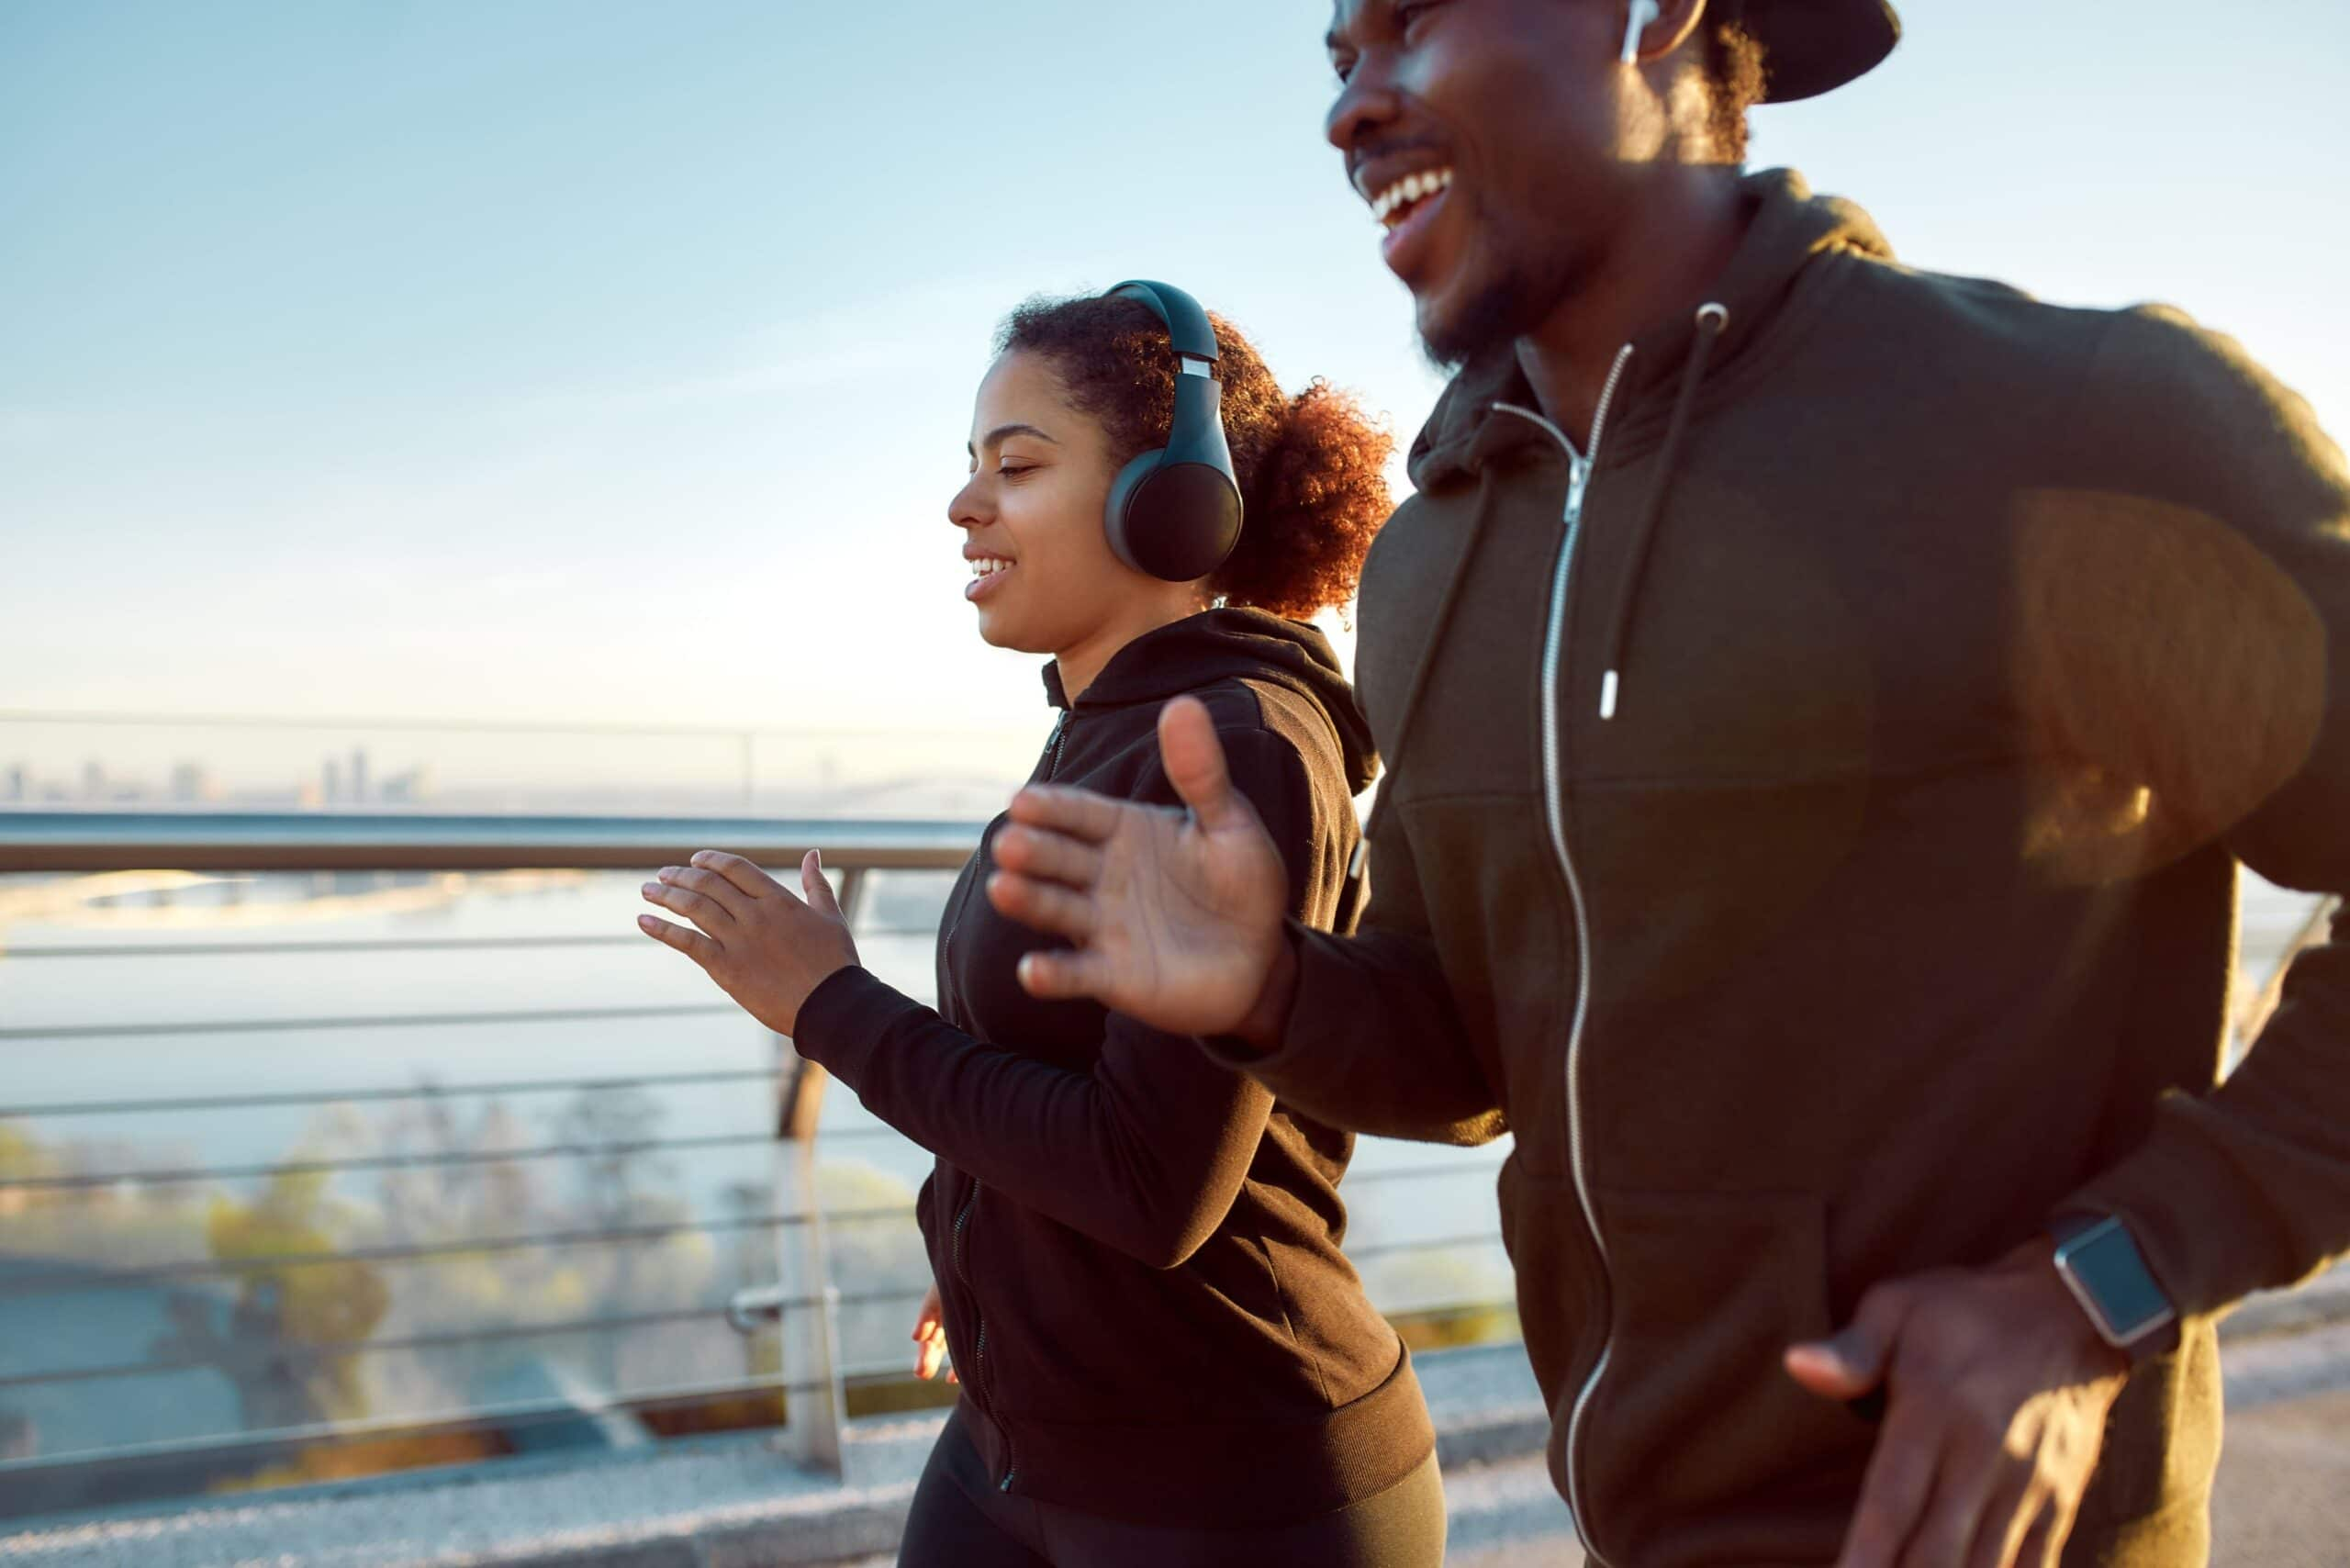 what are the mental benefits of running with a friend